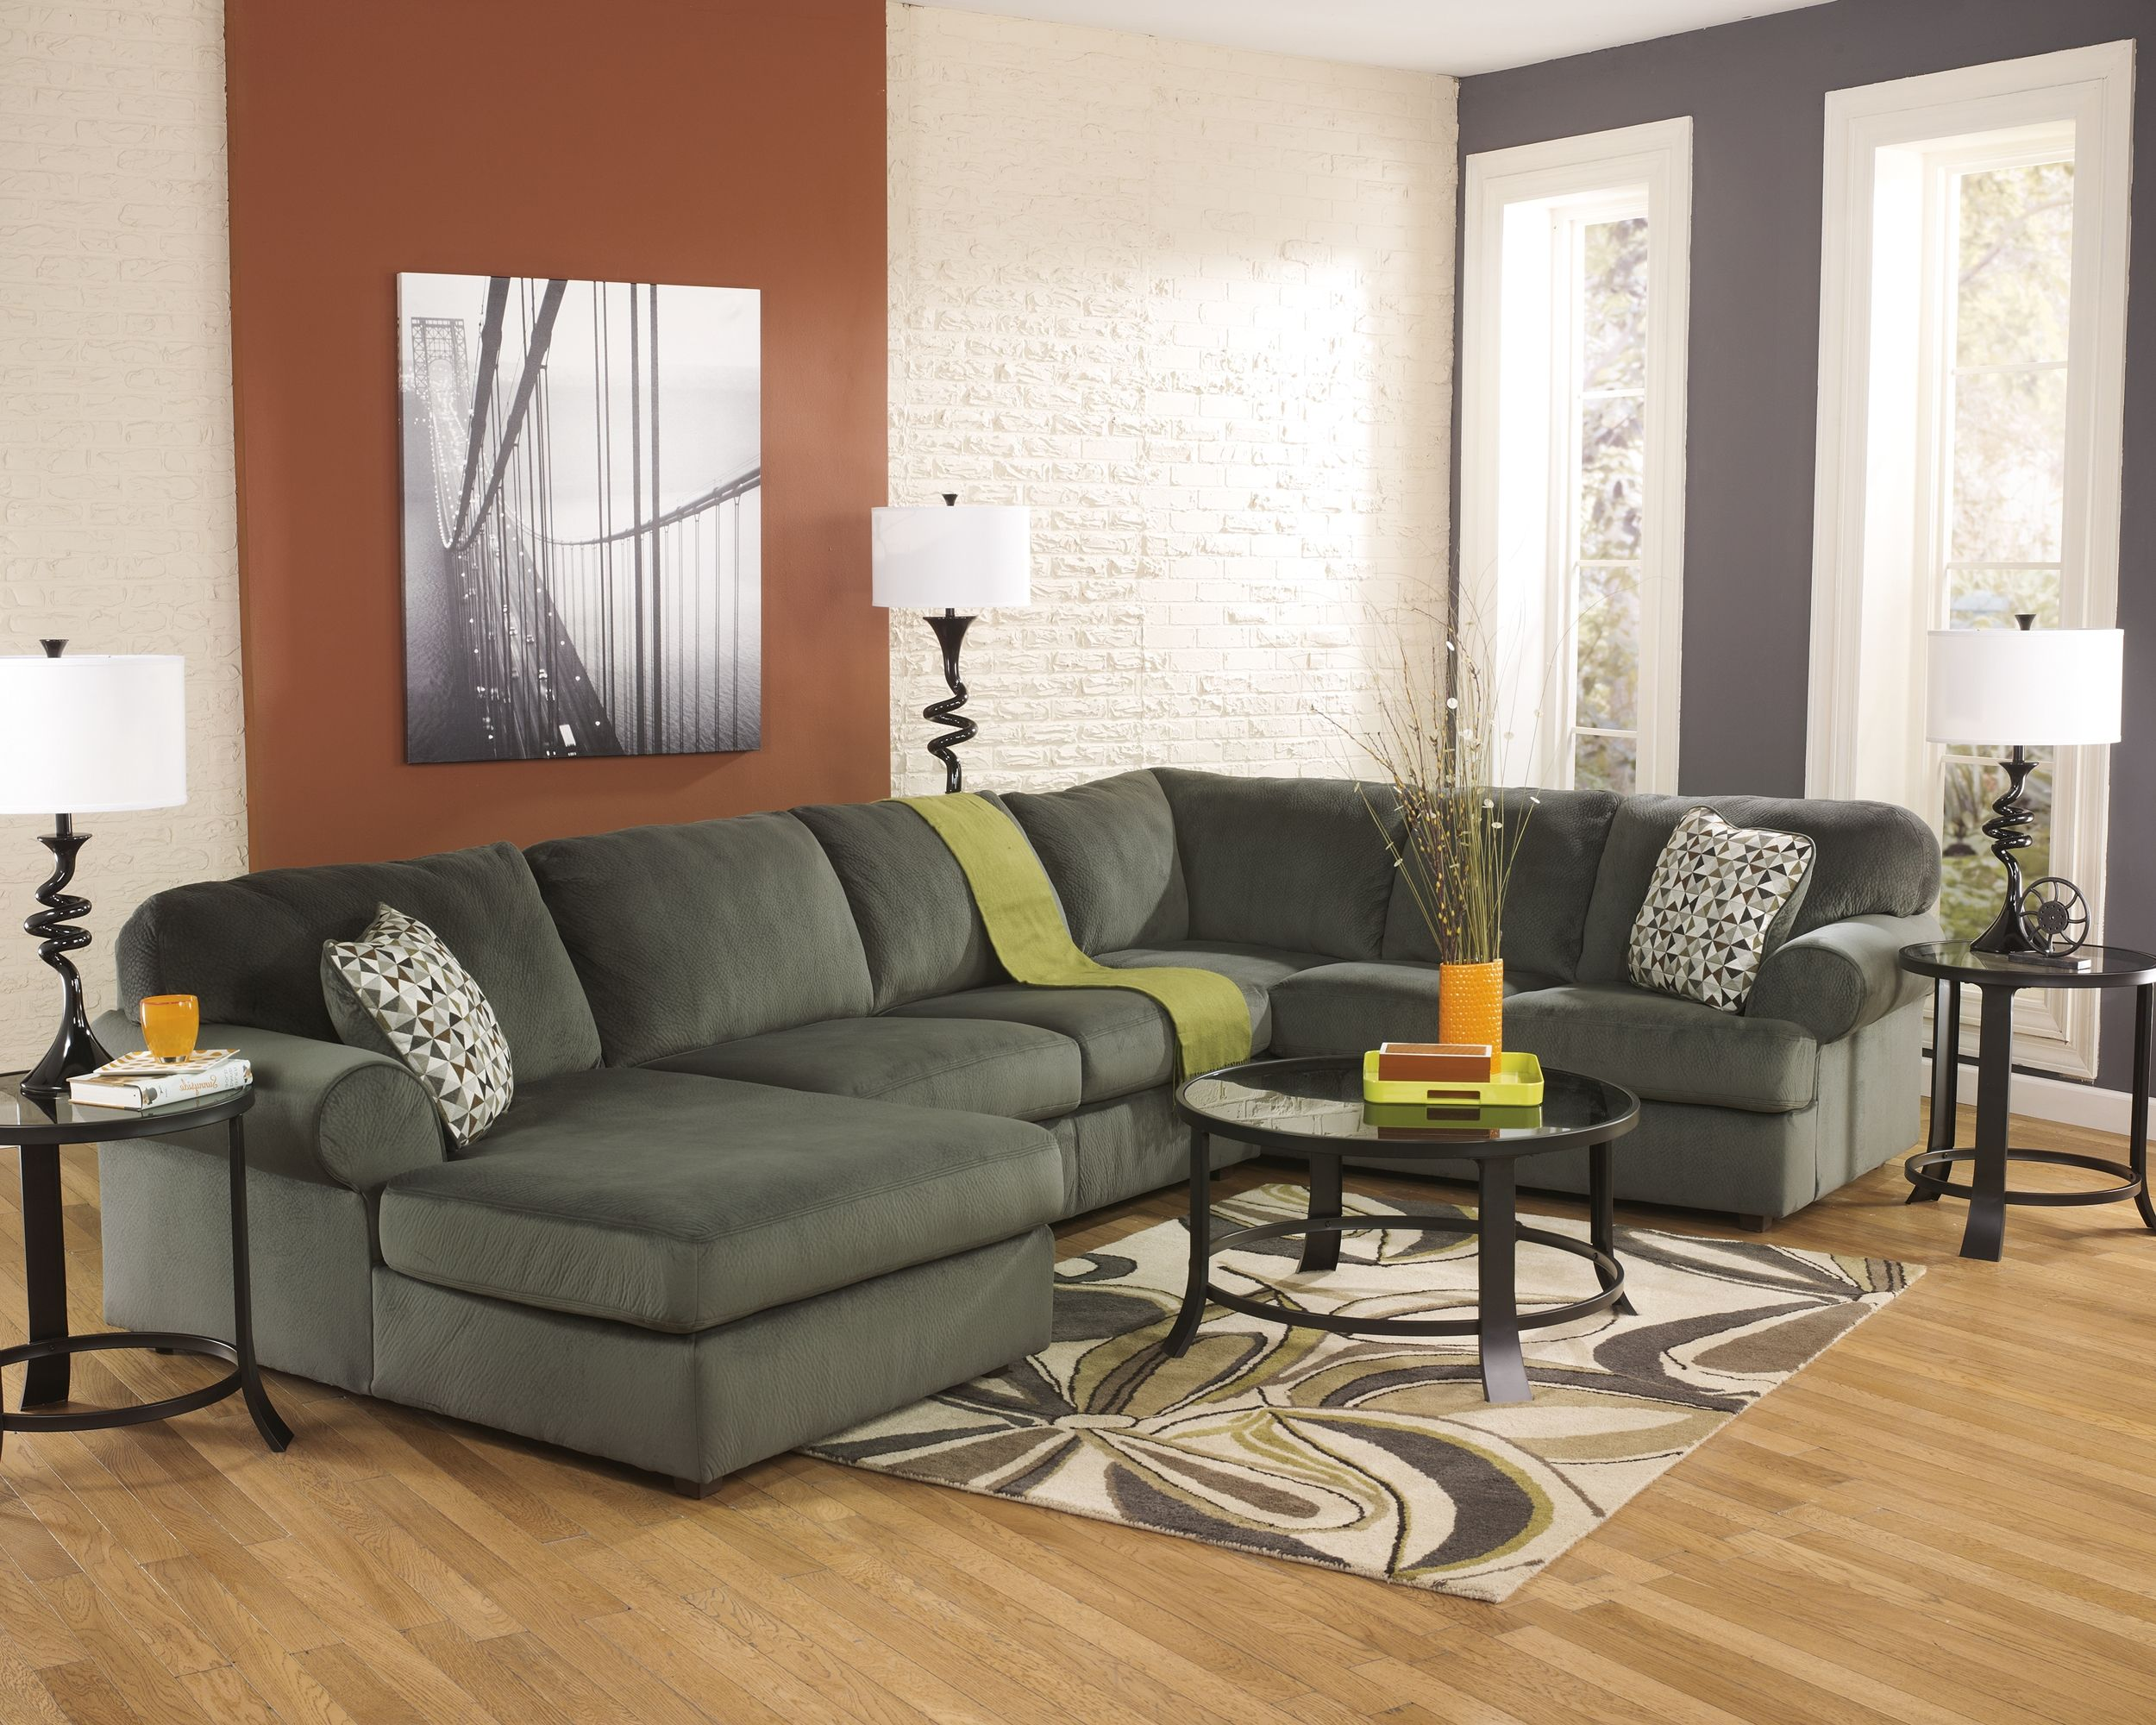 Admirable Jessa Place 3 Piece Sectional Pewter Products Living Spiritservingveterans Wood Chair Design Ideas Spiritservingveteransorg